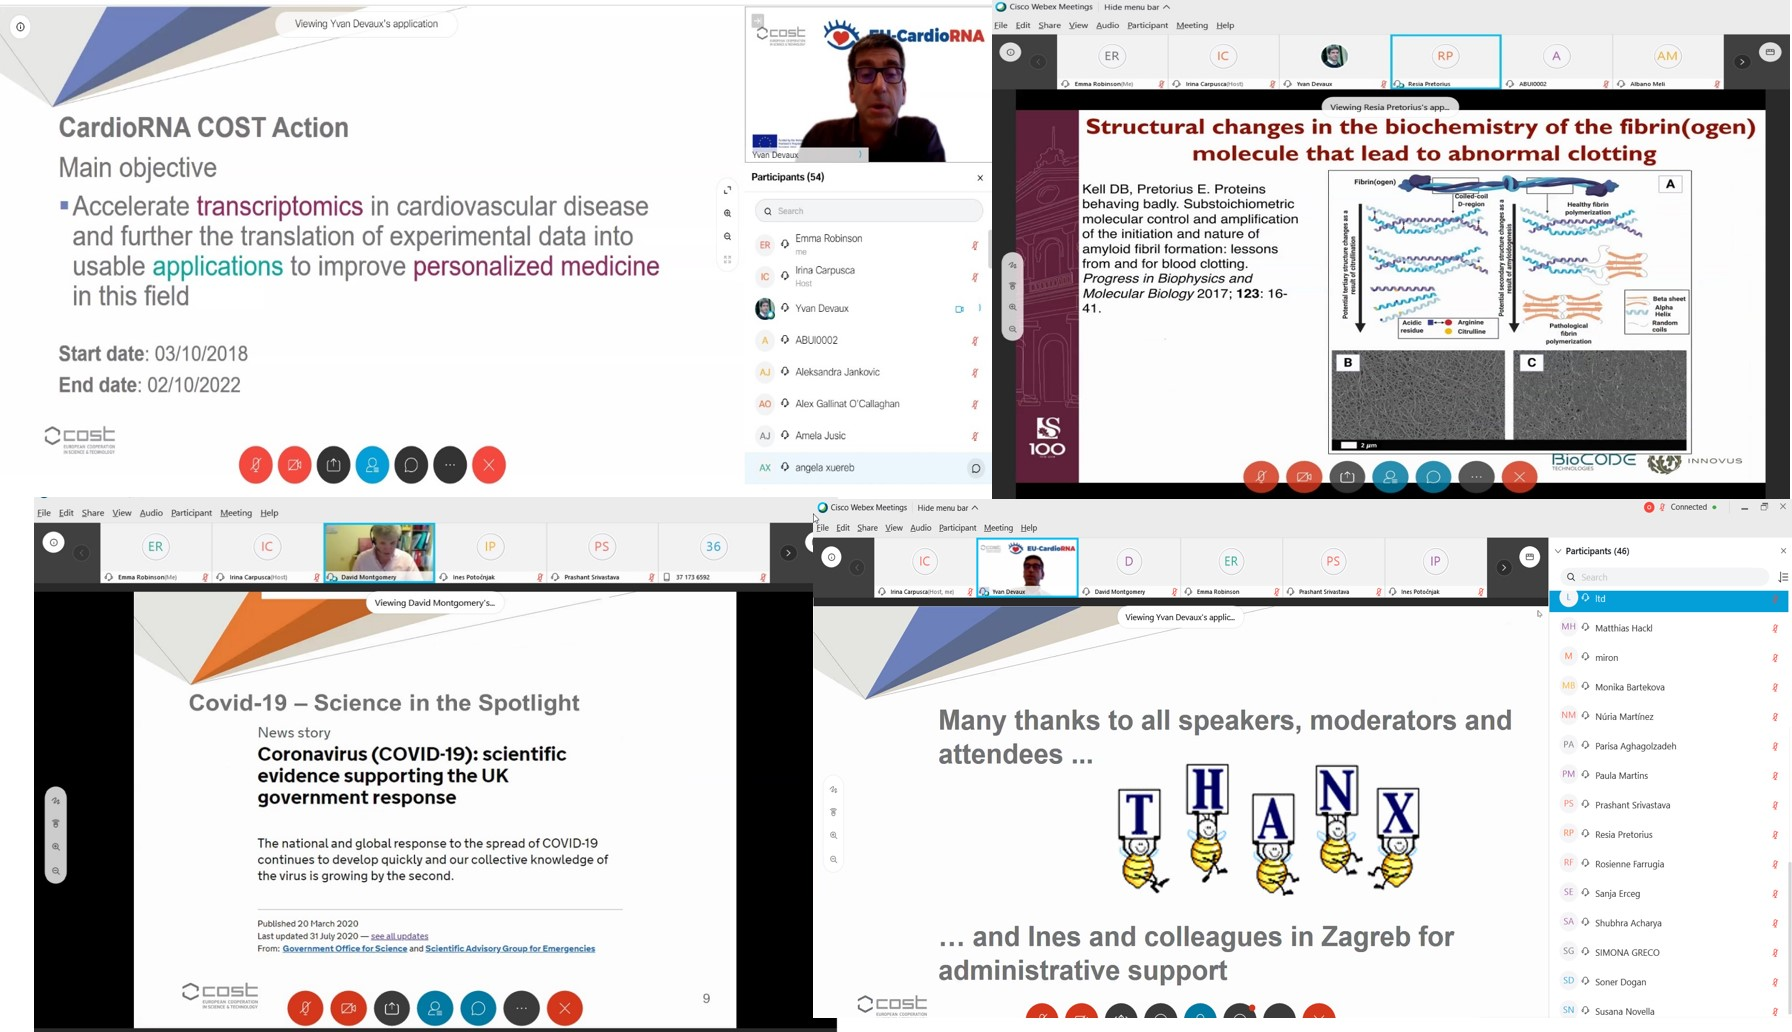 Successful first EU-CardioRNA Digital meeting: CardioRNA LIVE! 7-10 September